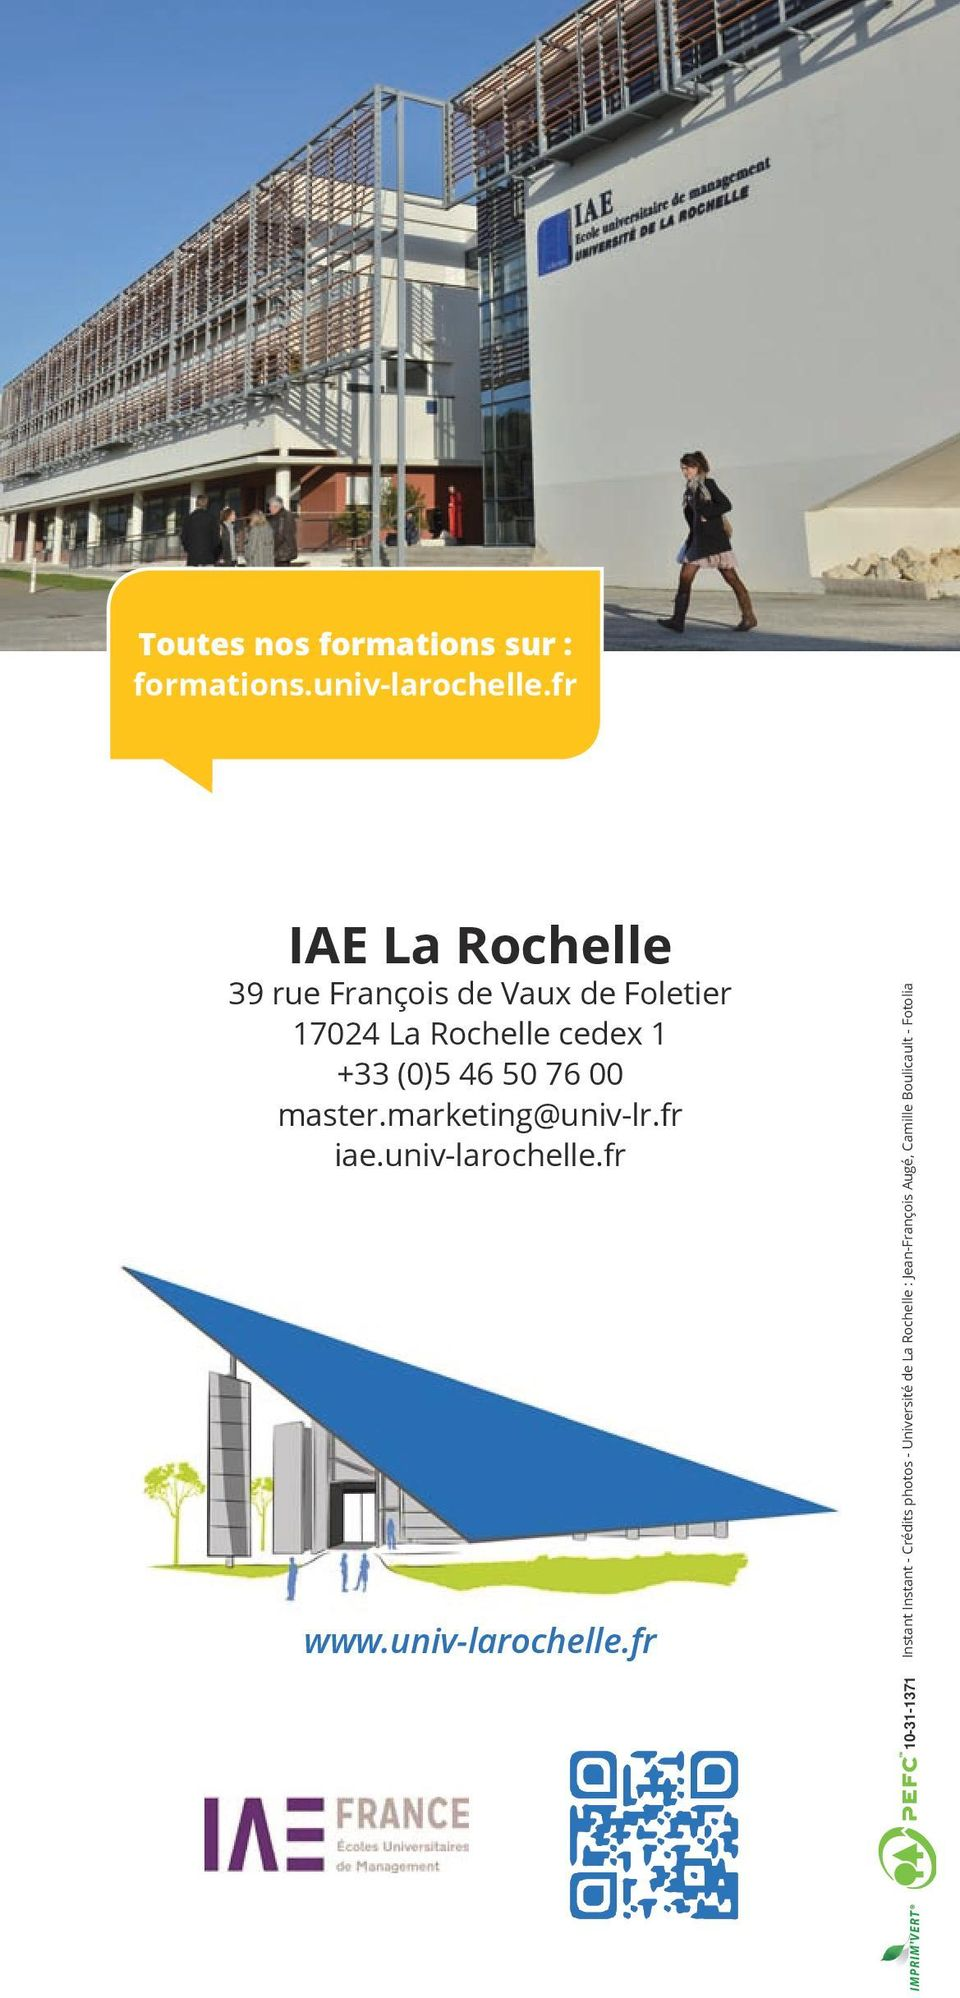 (0)5 46 50 76 00 master.marketing@univ-lr.fr iae.univ-larochelle.